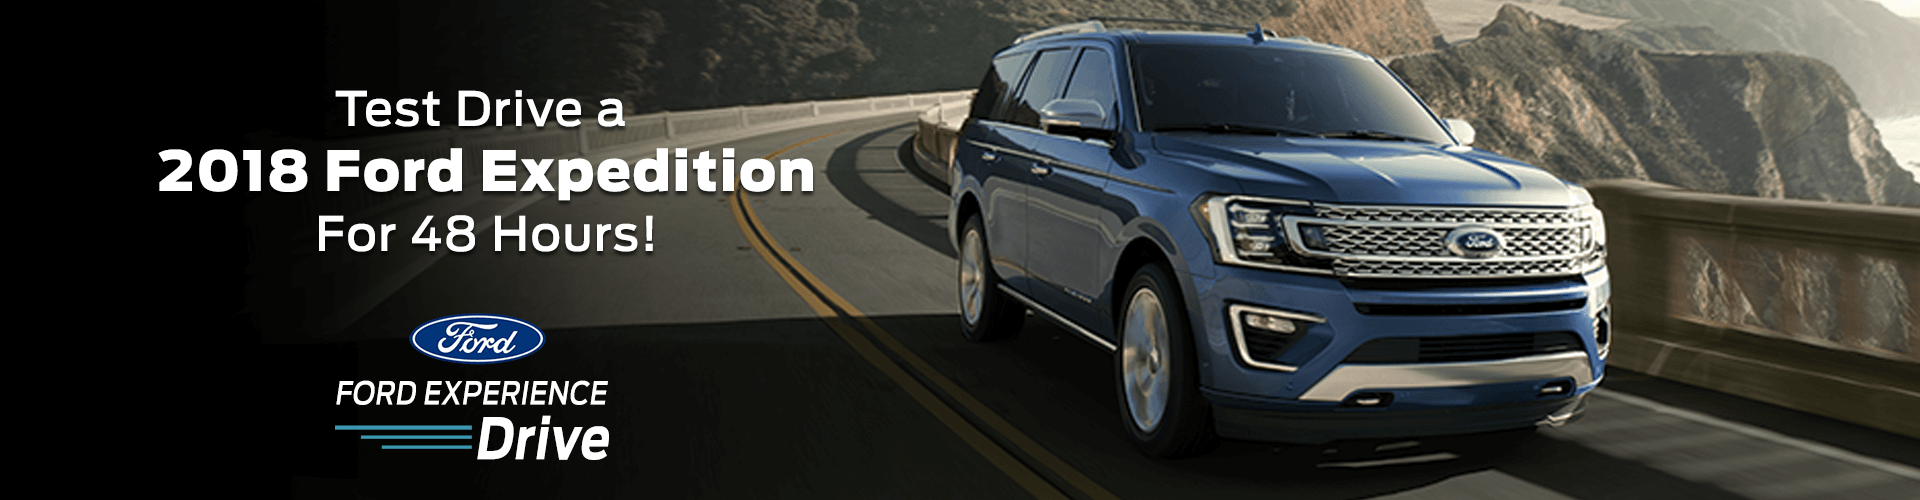 Test Drive a 2018 Ford Expedition